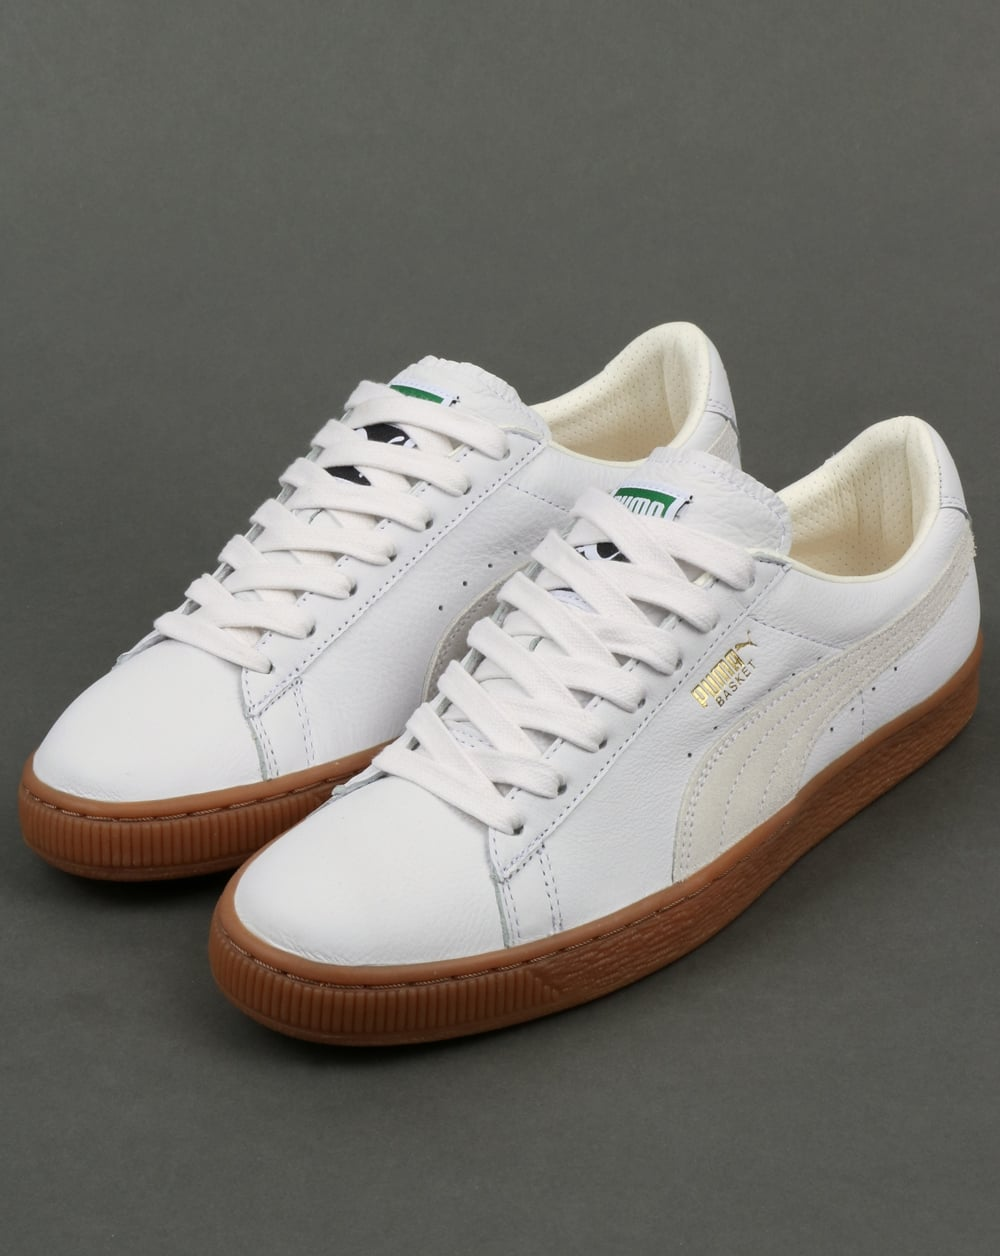 6ca29298af4dc Puma Basket Classic Gum Deluxe Trainers White